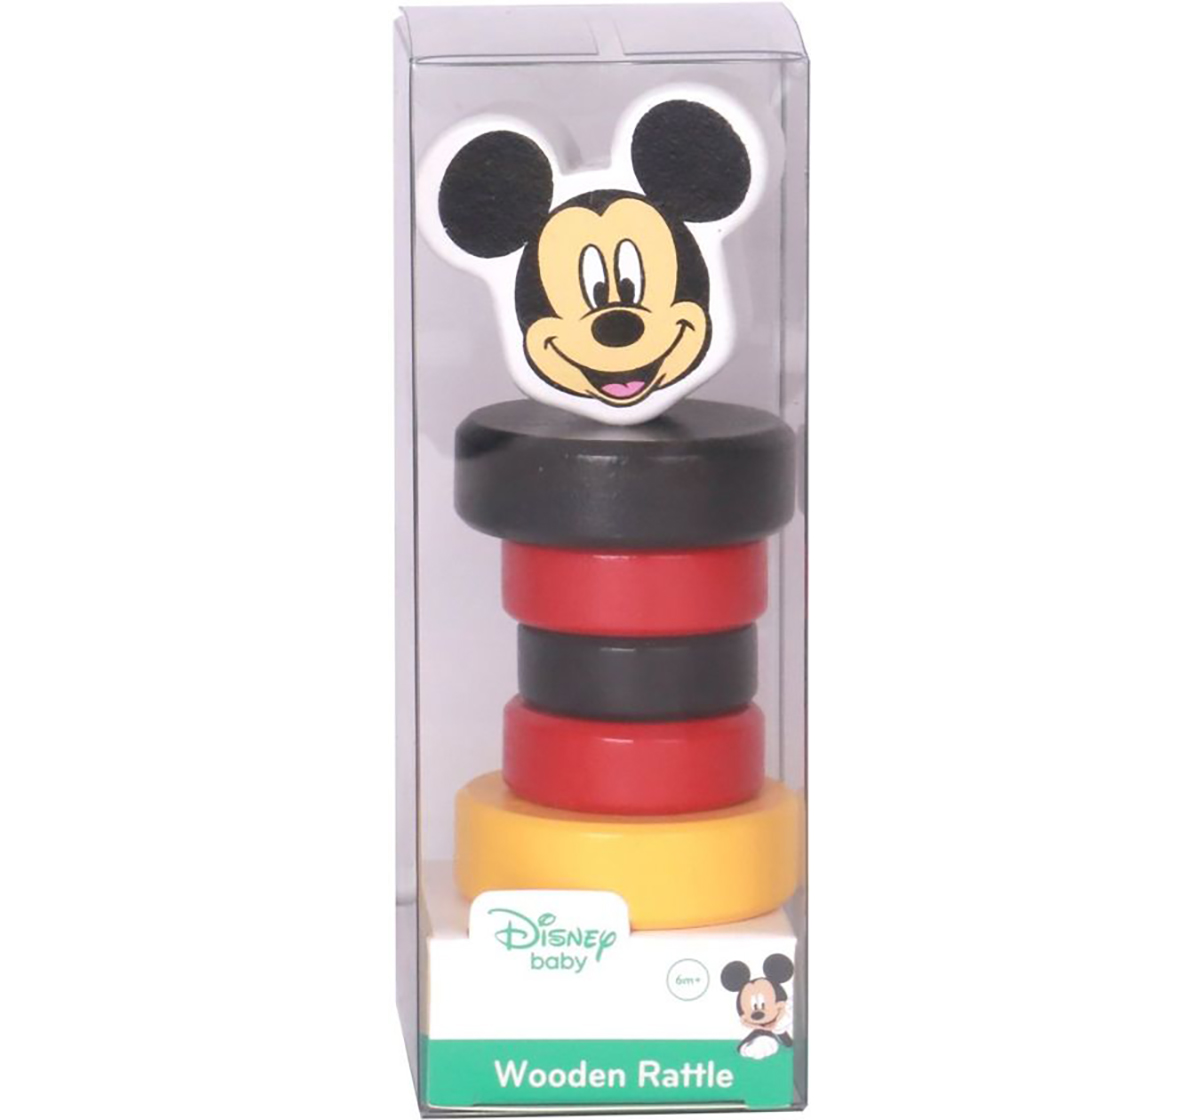 Disney | Disney Mickey Wooden Rattle for New Born Kids age 6M+